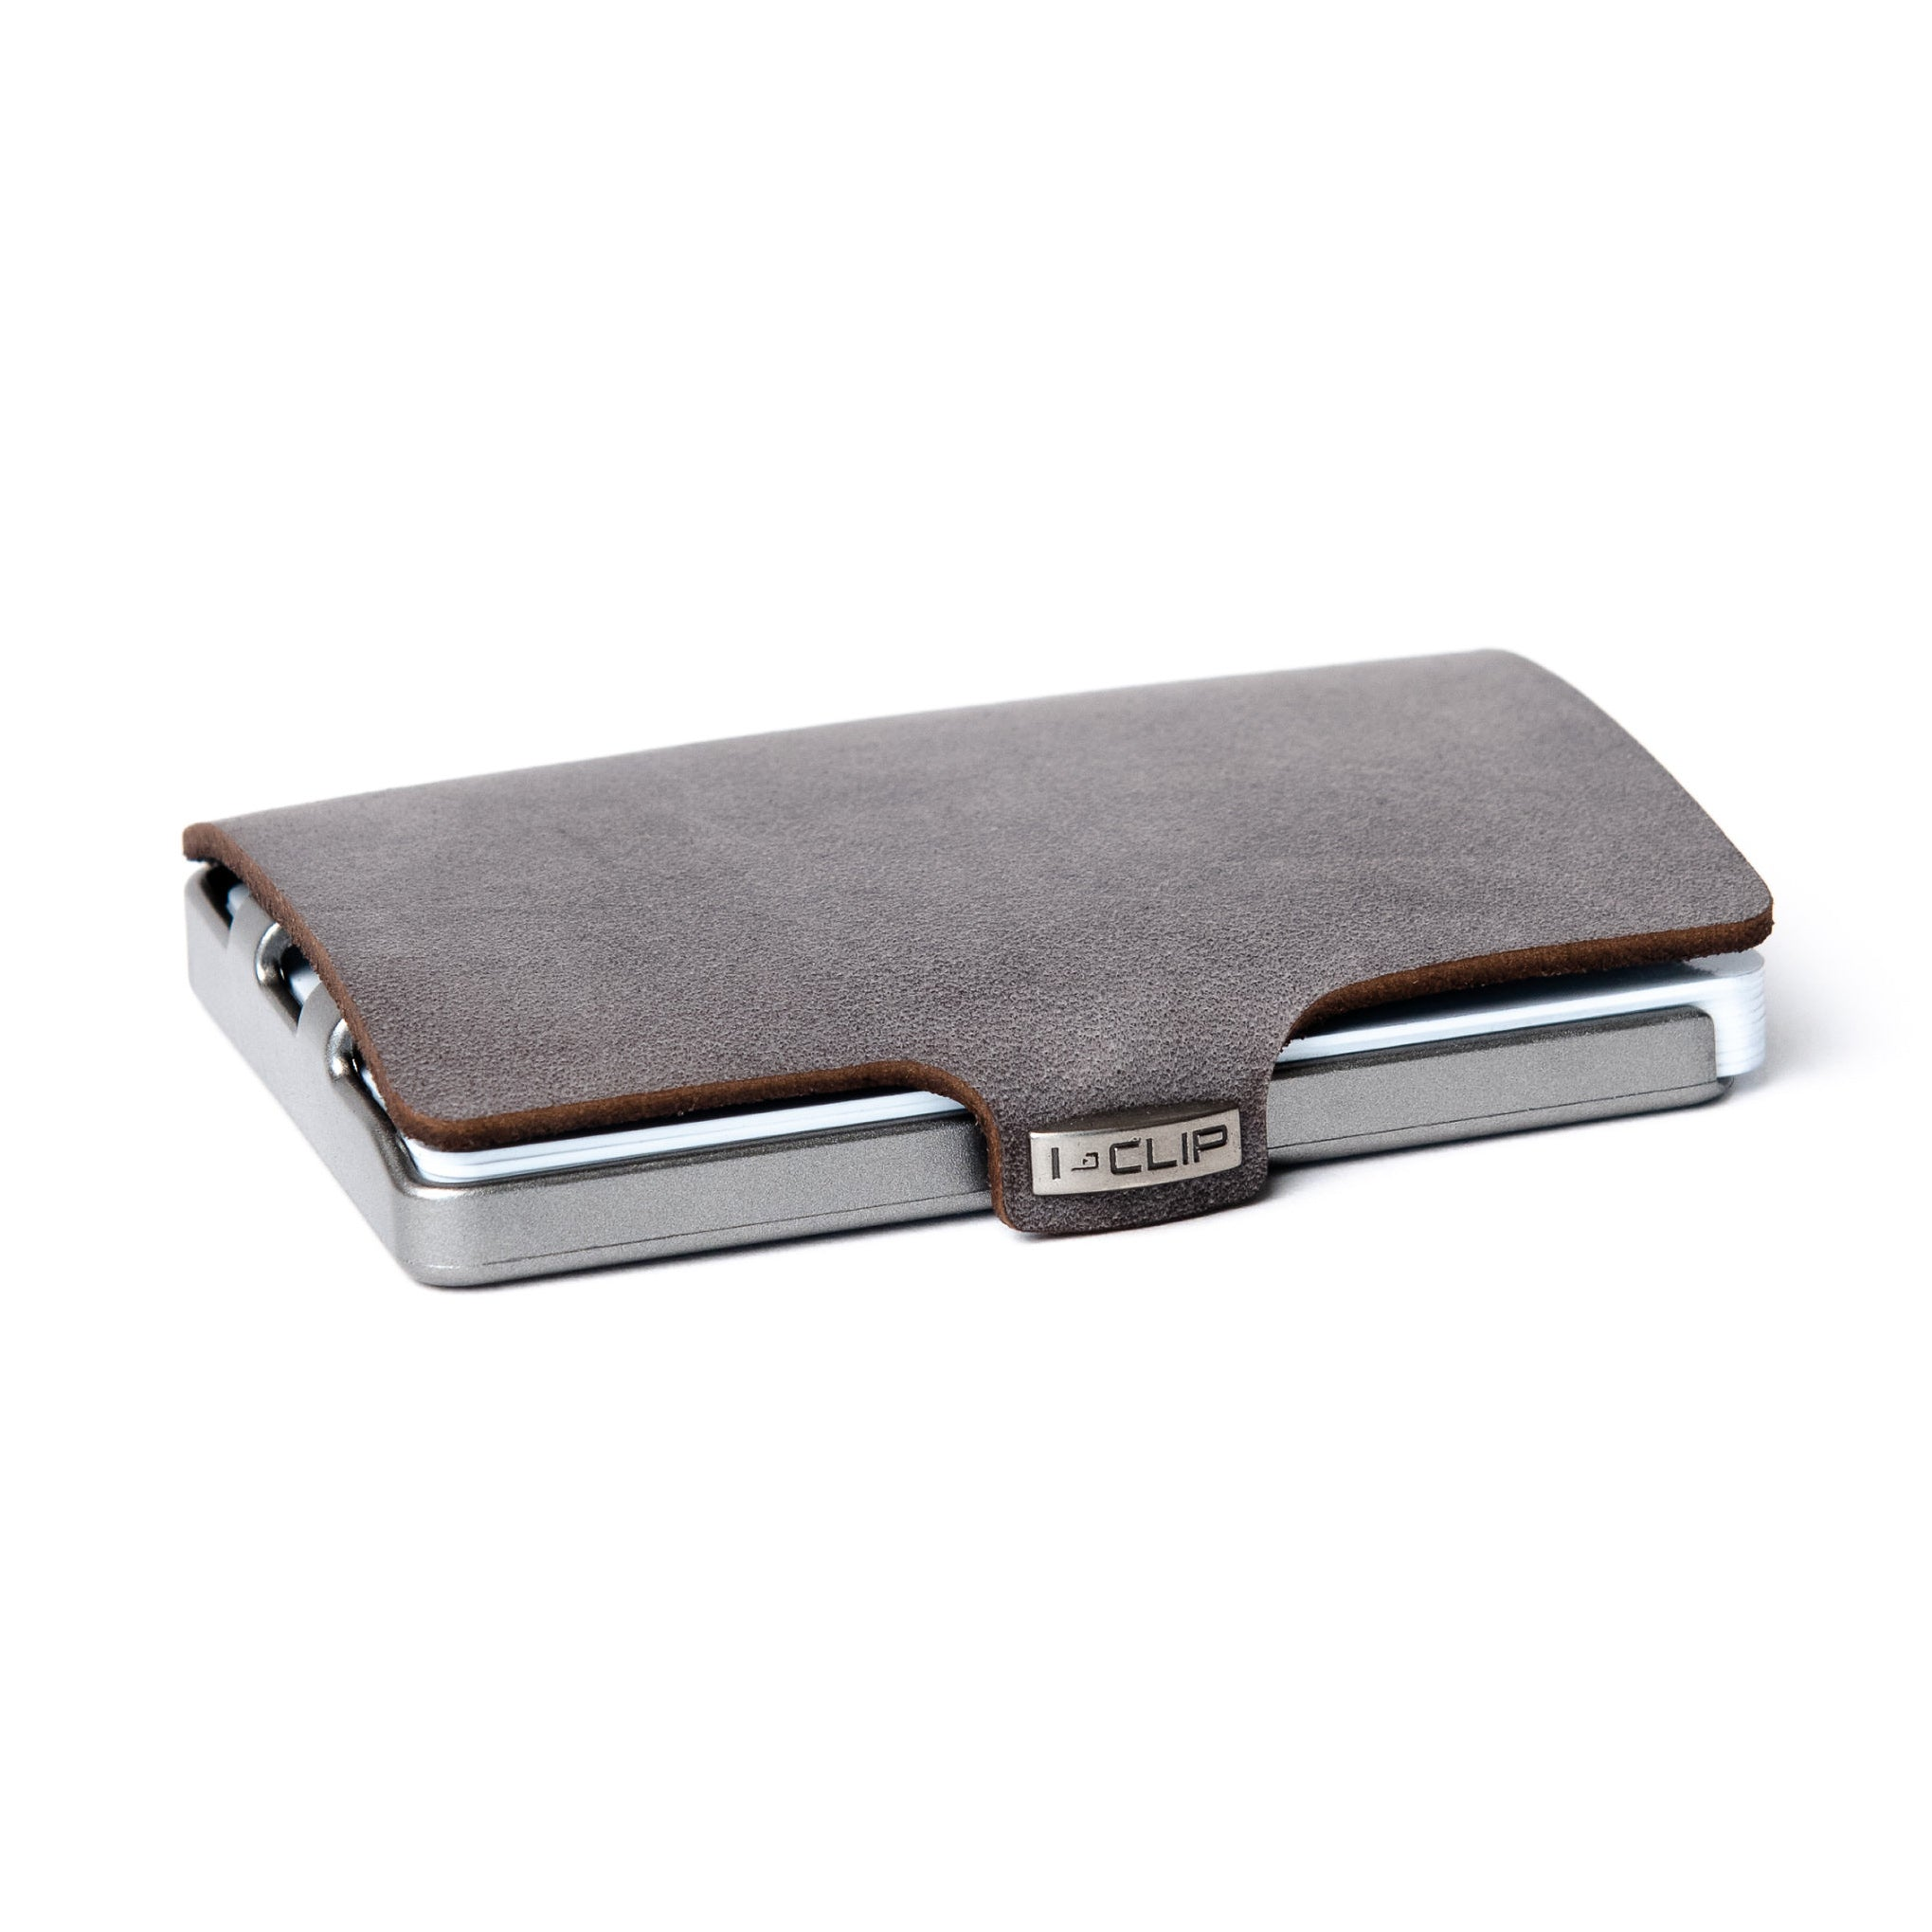 Soft Touch Leather - Slate / Metallic Gray Frame - I-CLIP